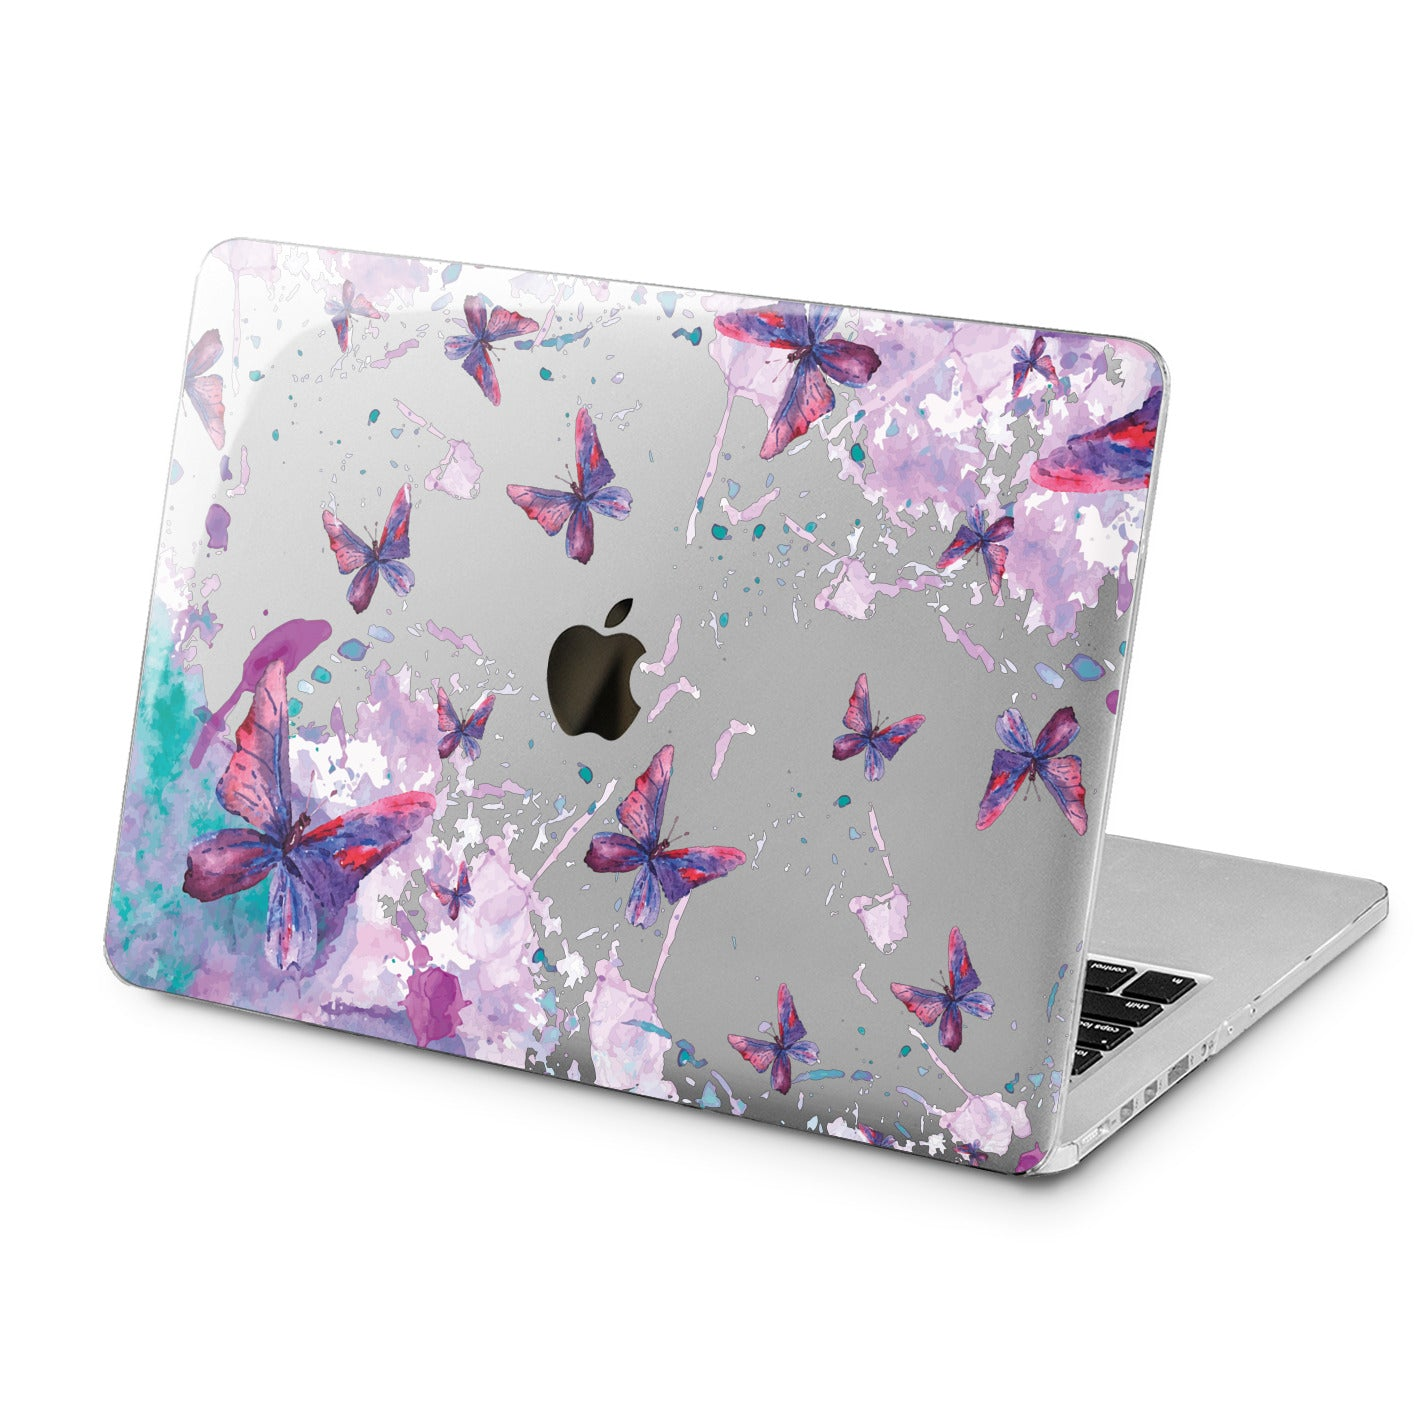 Lex Altern Lex Altern Butterfly Watercolor Case for your Laptop Apple Macbook.